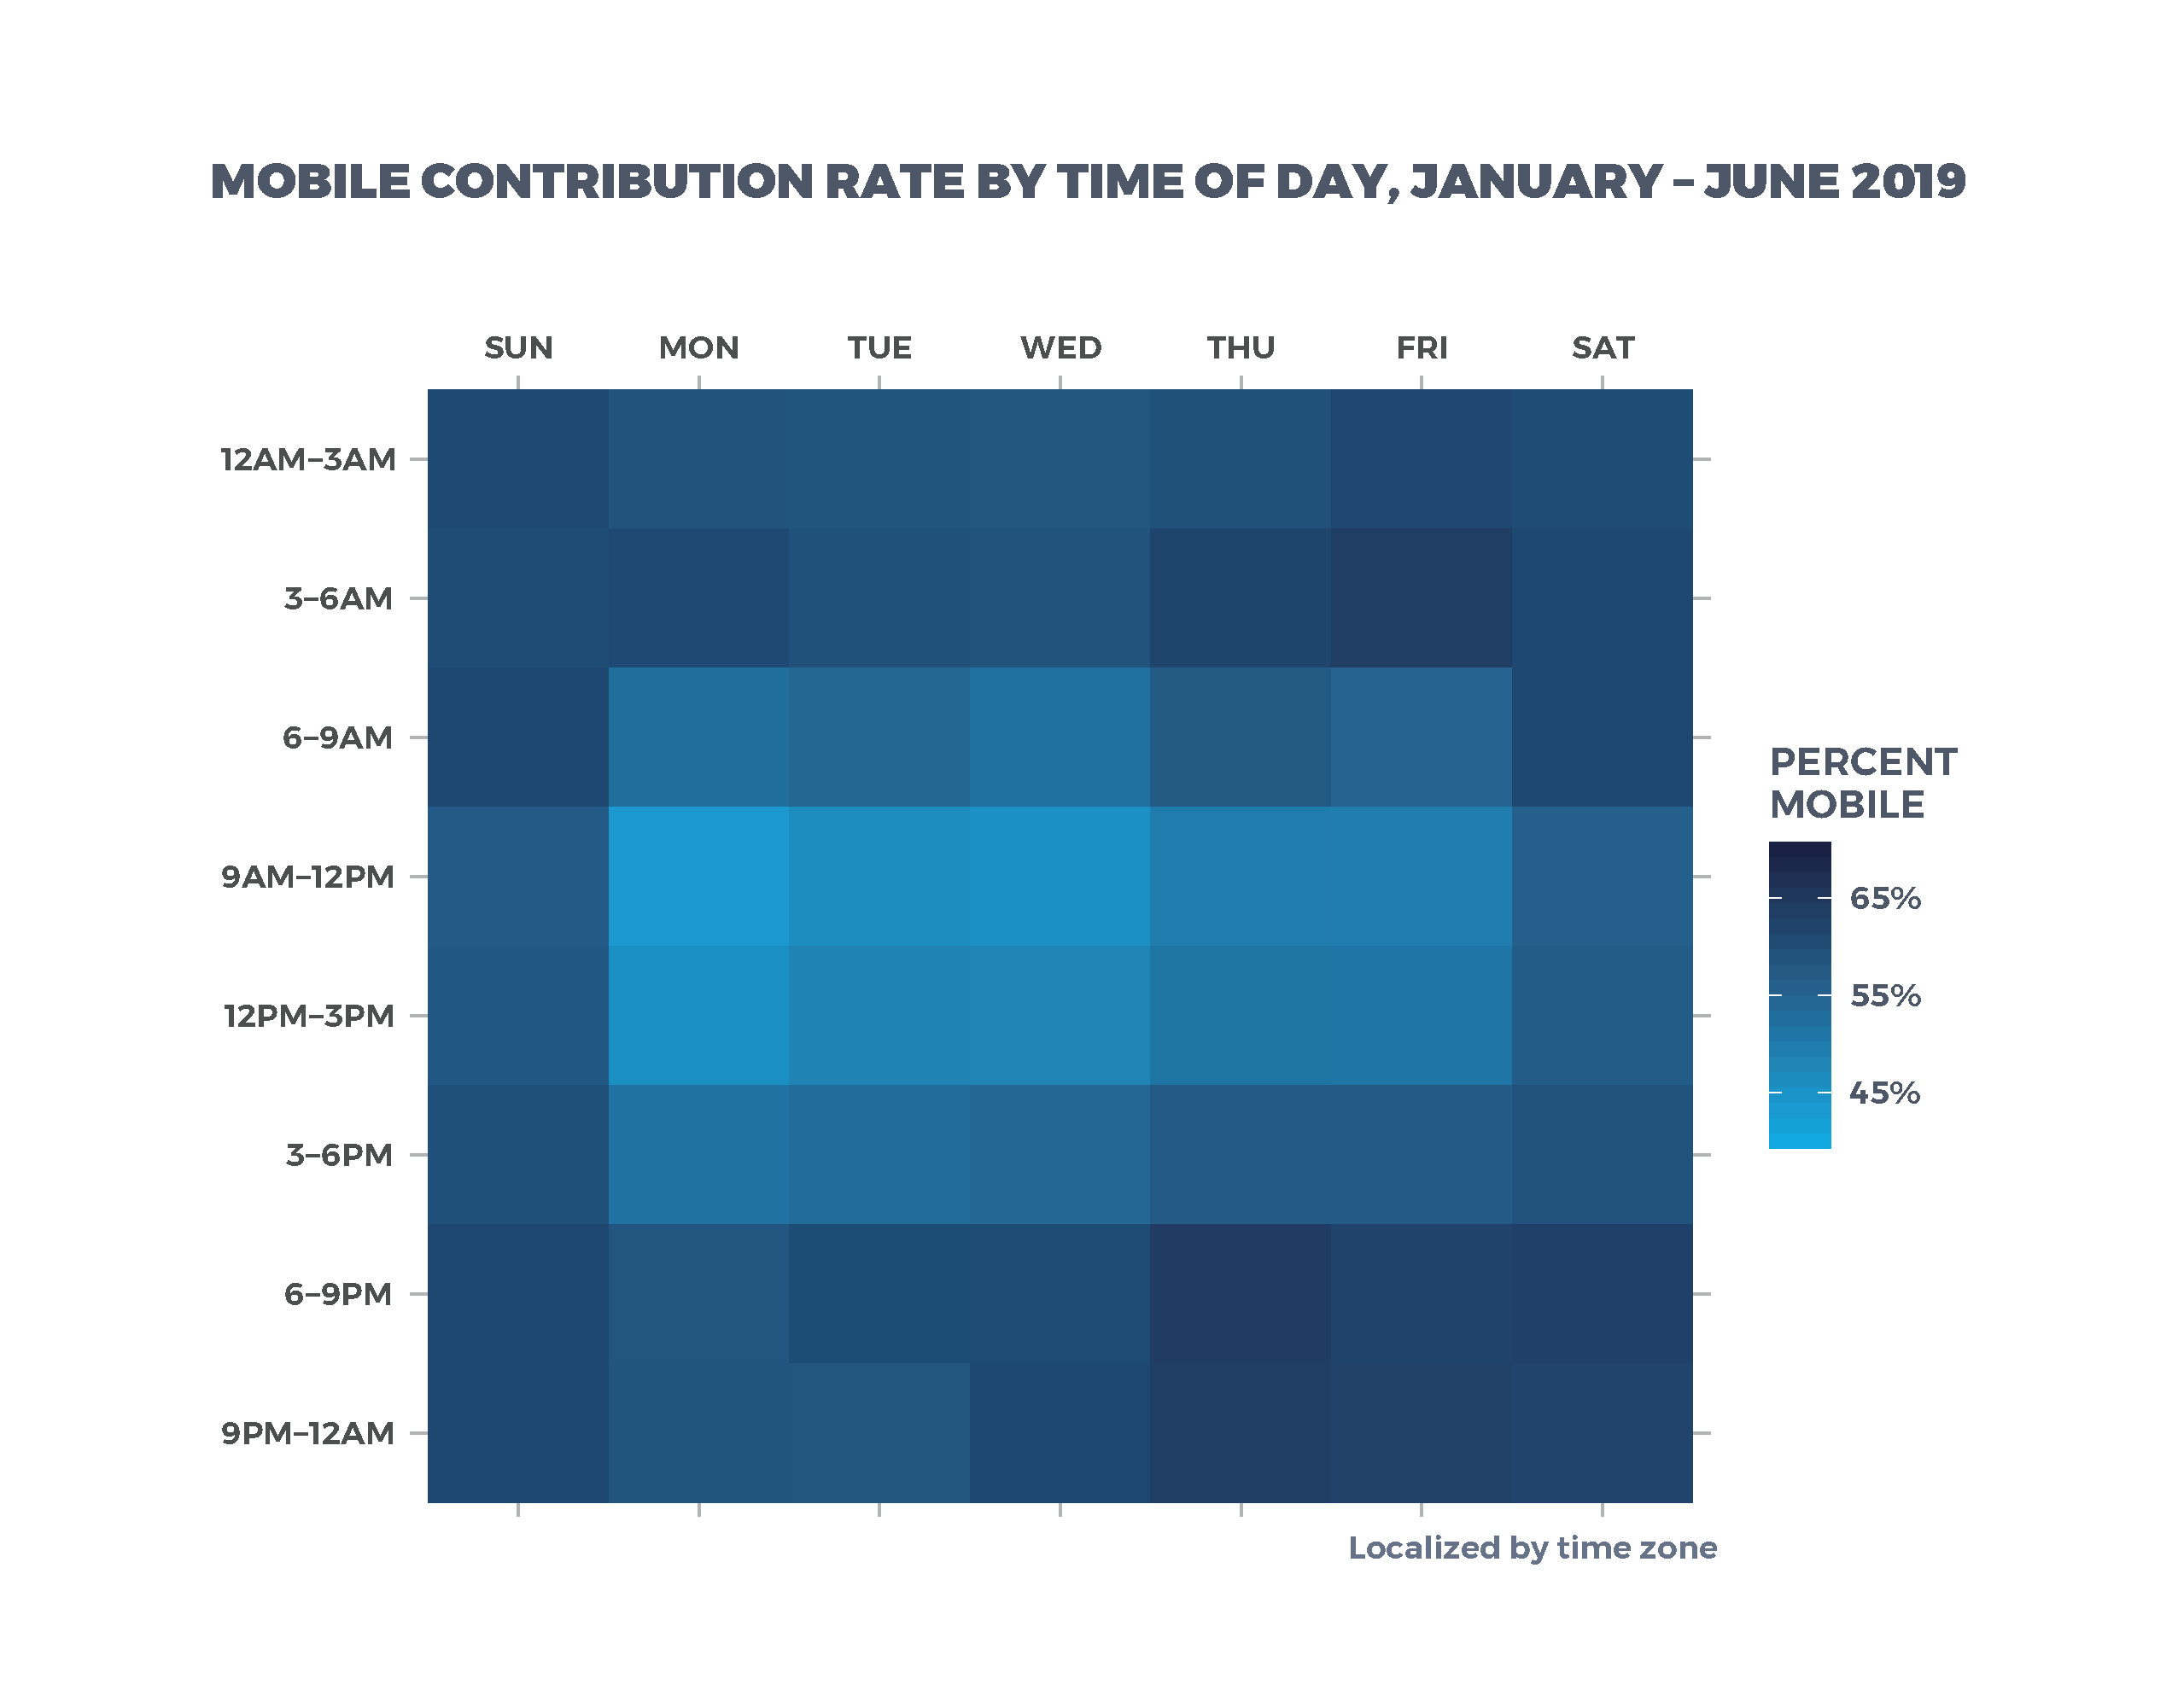 Mobile Contribution Rate By Time of Day, January - June 2019